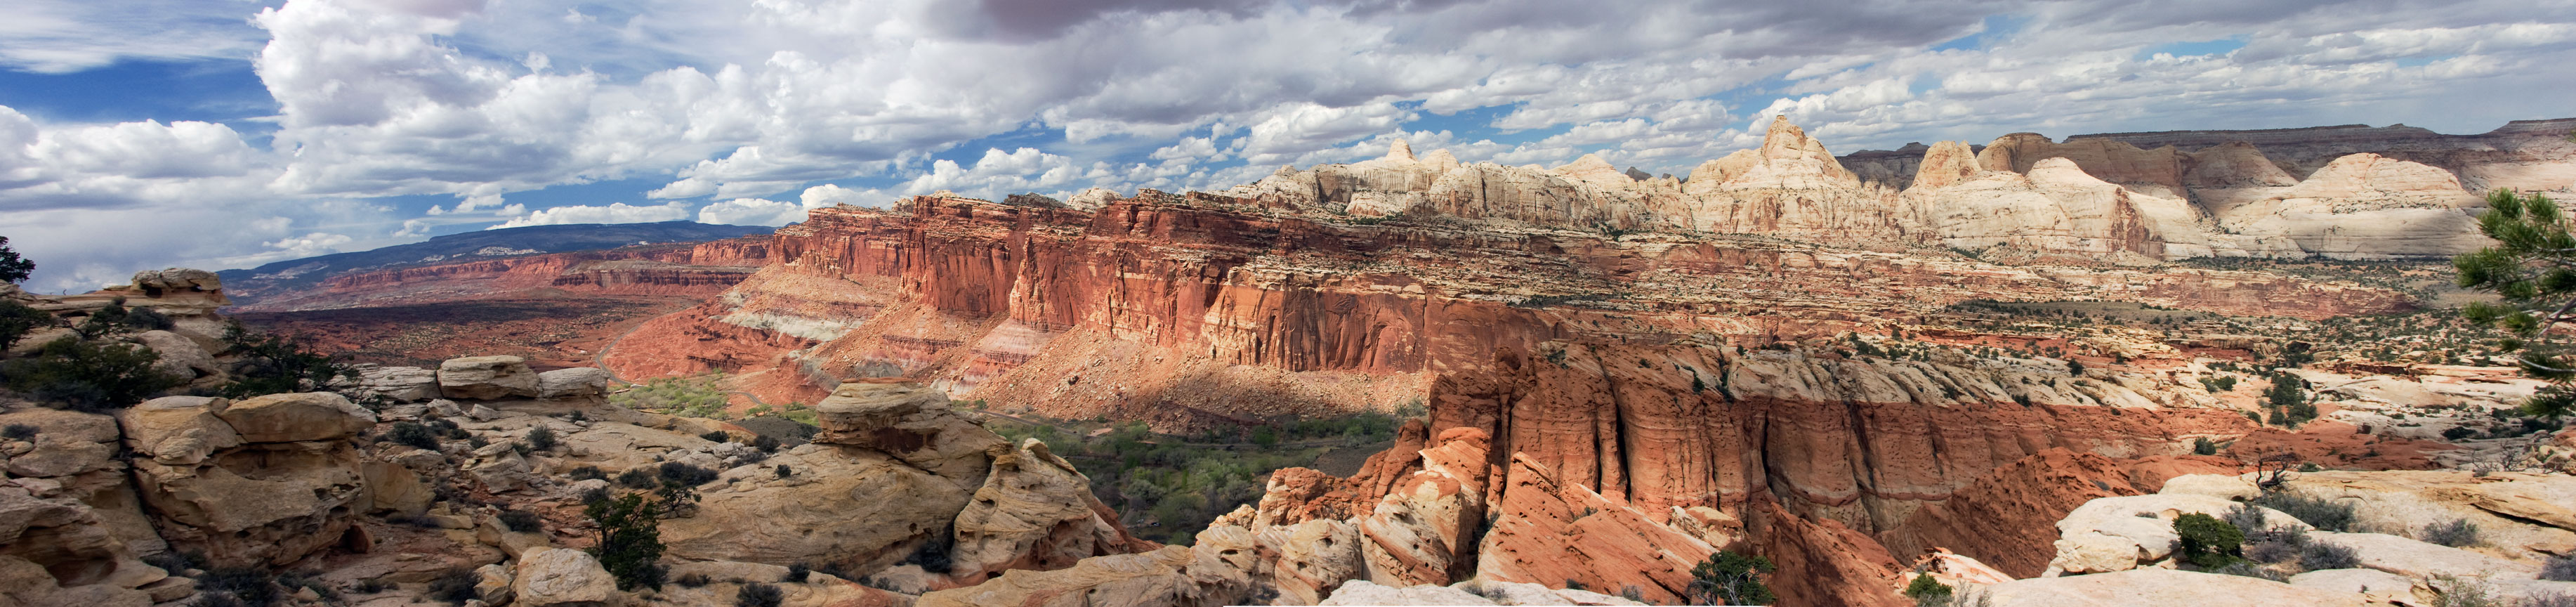 Frying Pan Trail Capitol Reef National Park